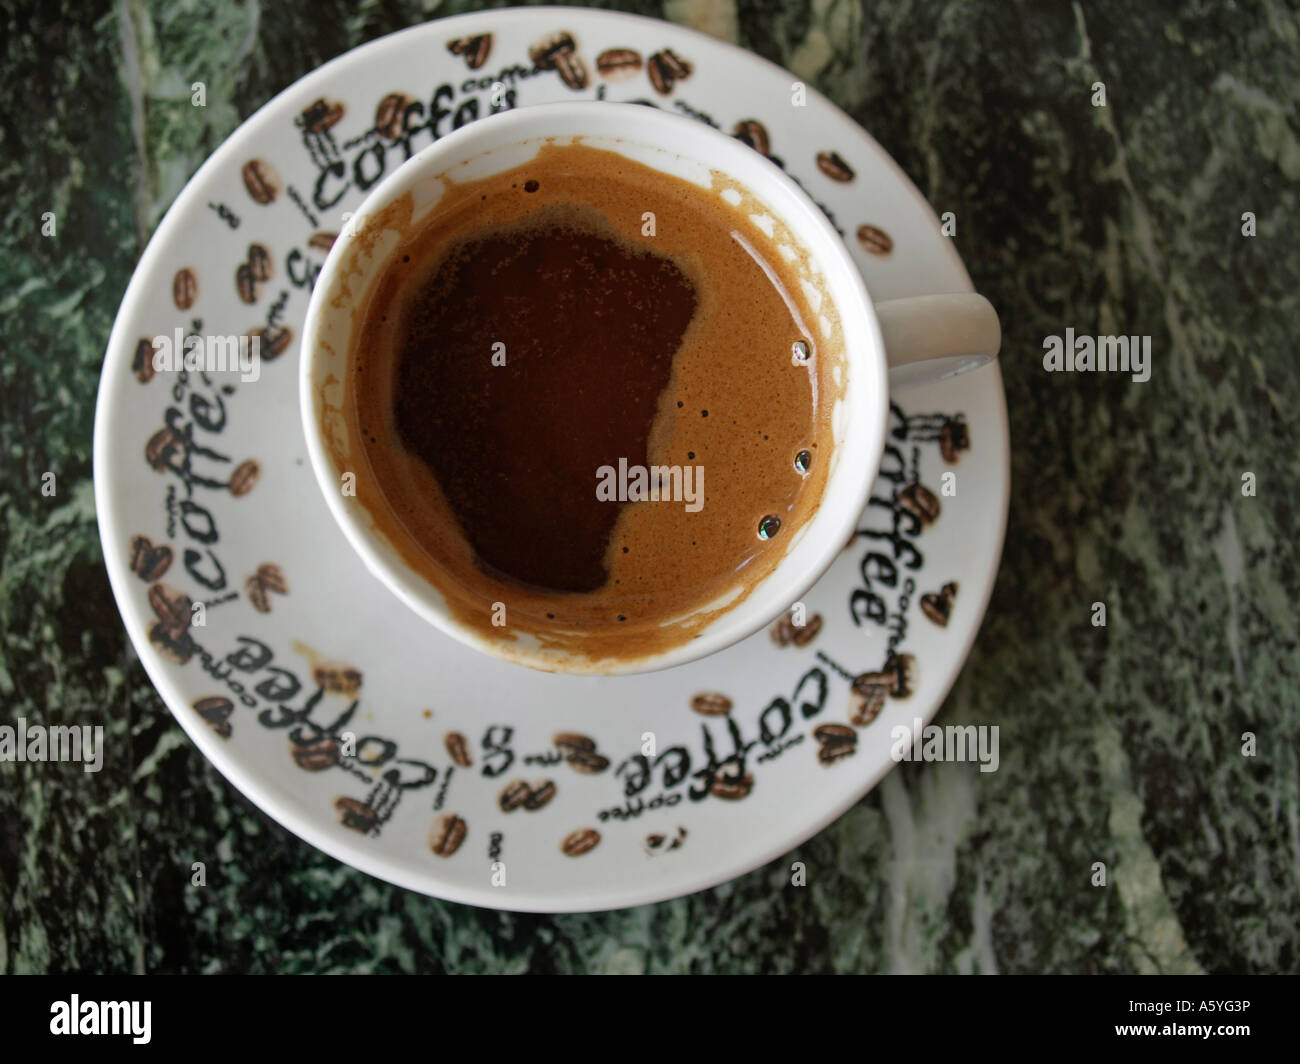 cup of coffee on a marmoreal marble table topview - Stock Image